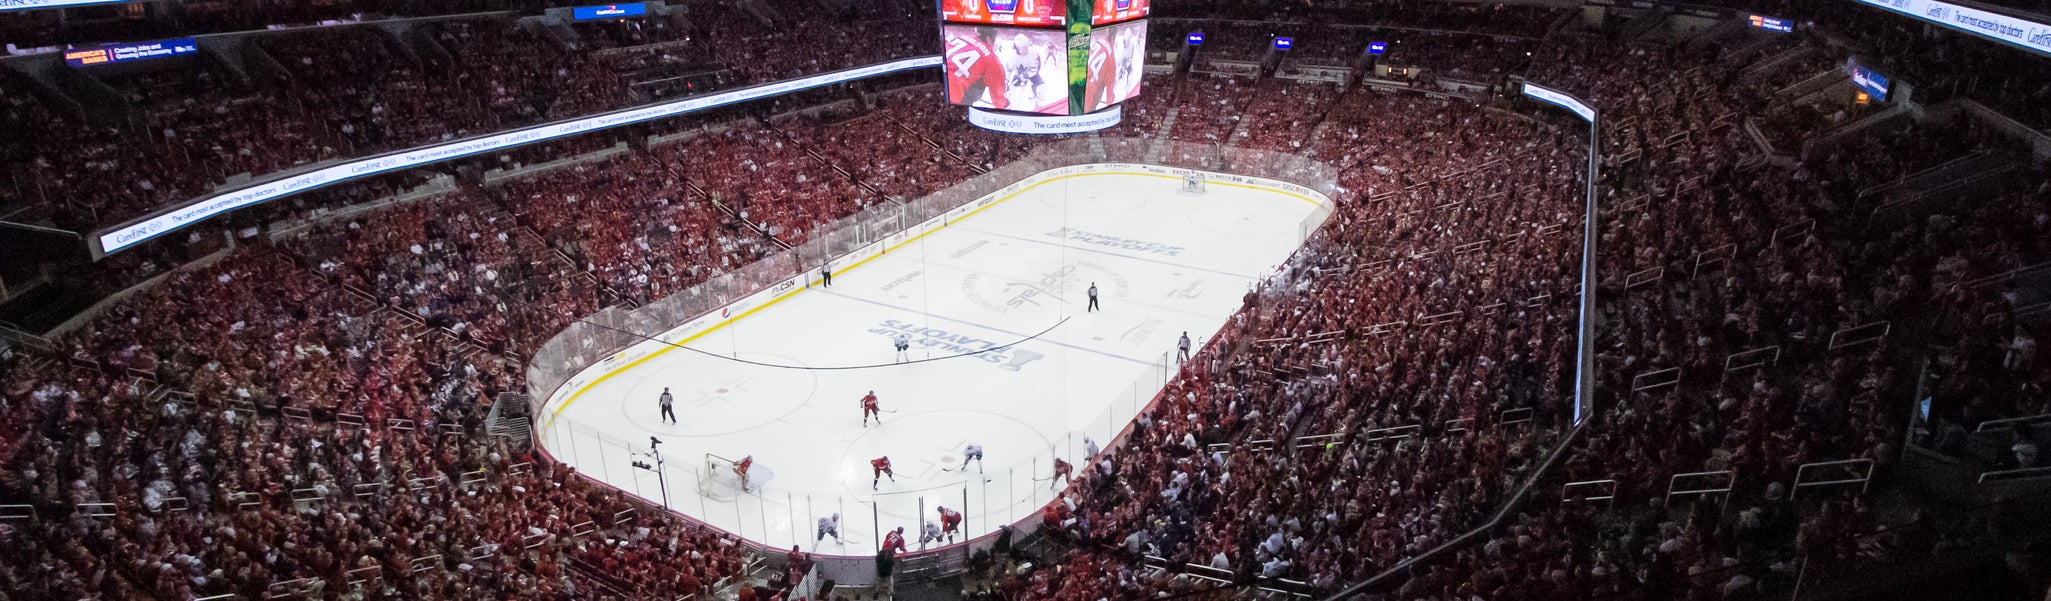 Seat view from Mezzanine End 428 at Capital One Arena